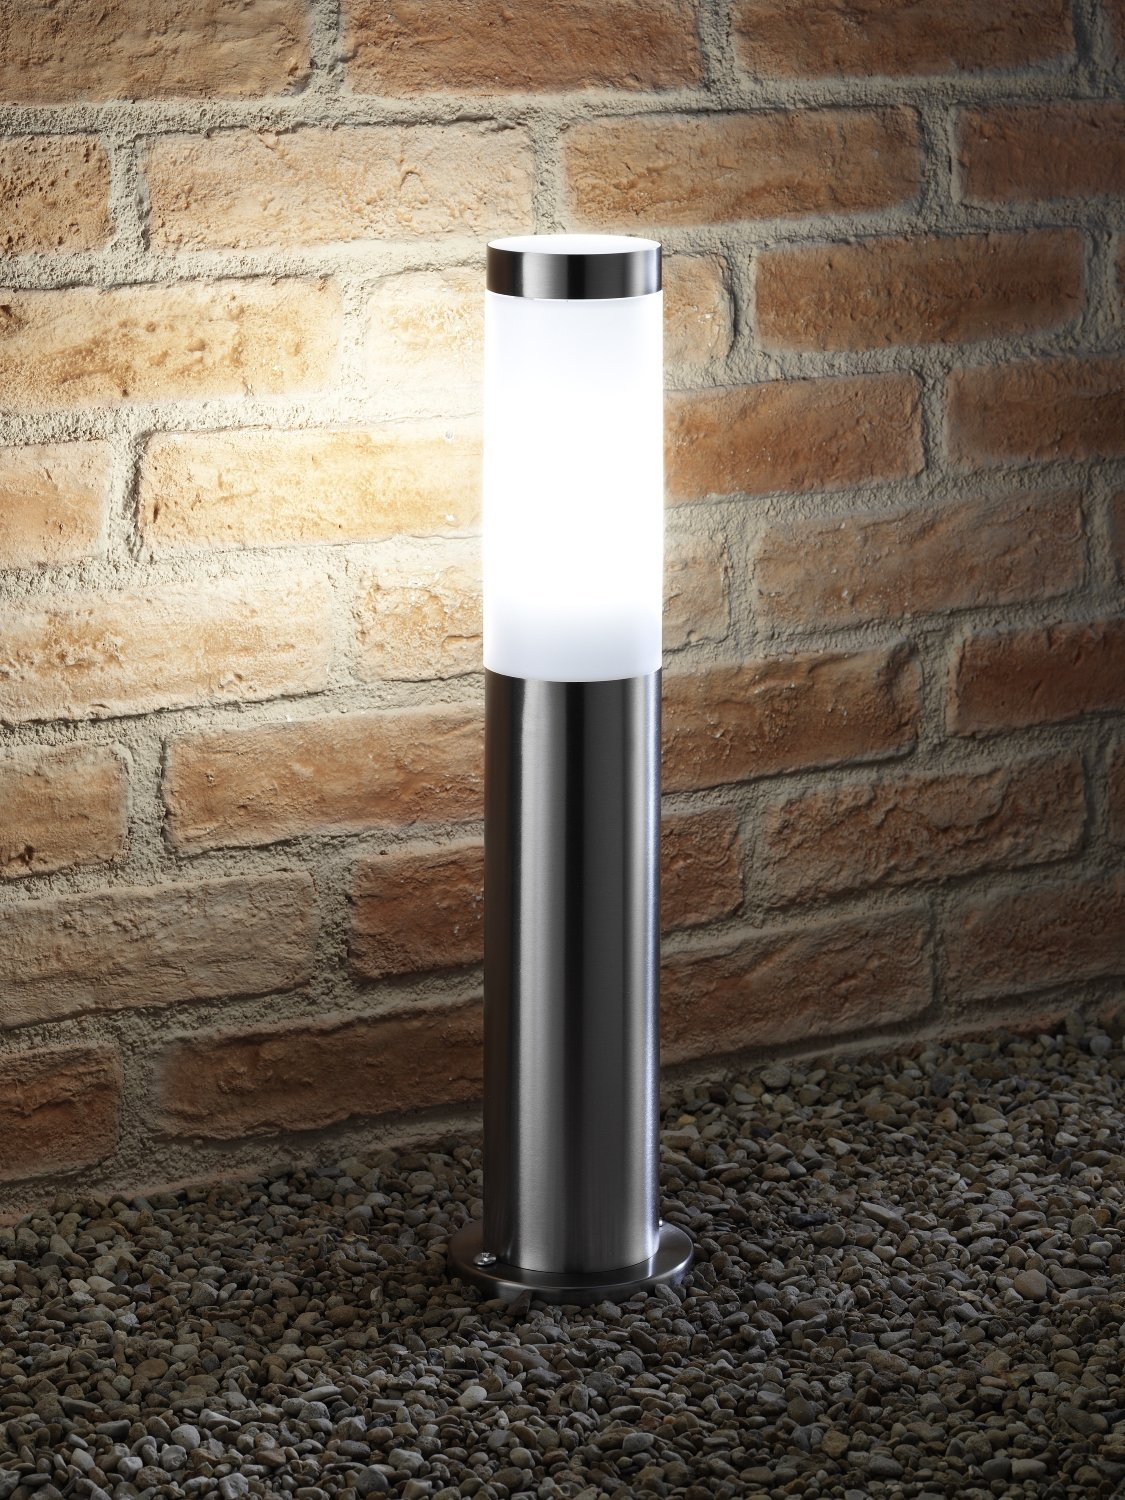 Auraglow Outdoor IP44 Stainless Steel Post Light with 240v Power Outlet Plug Socket - Cool White [Energy Class A+]